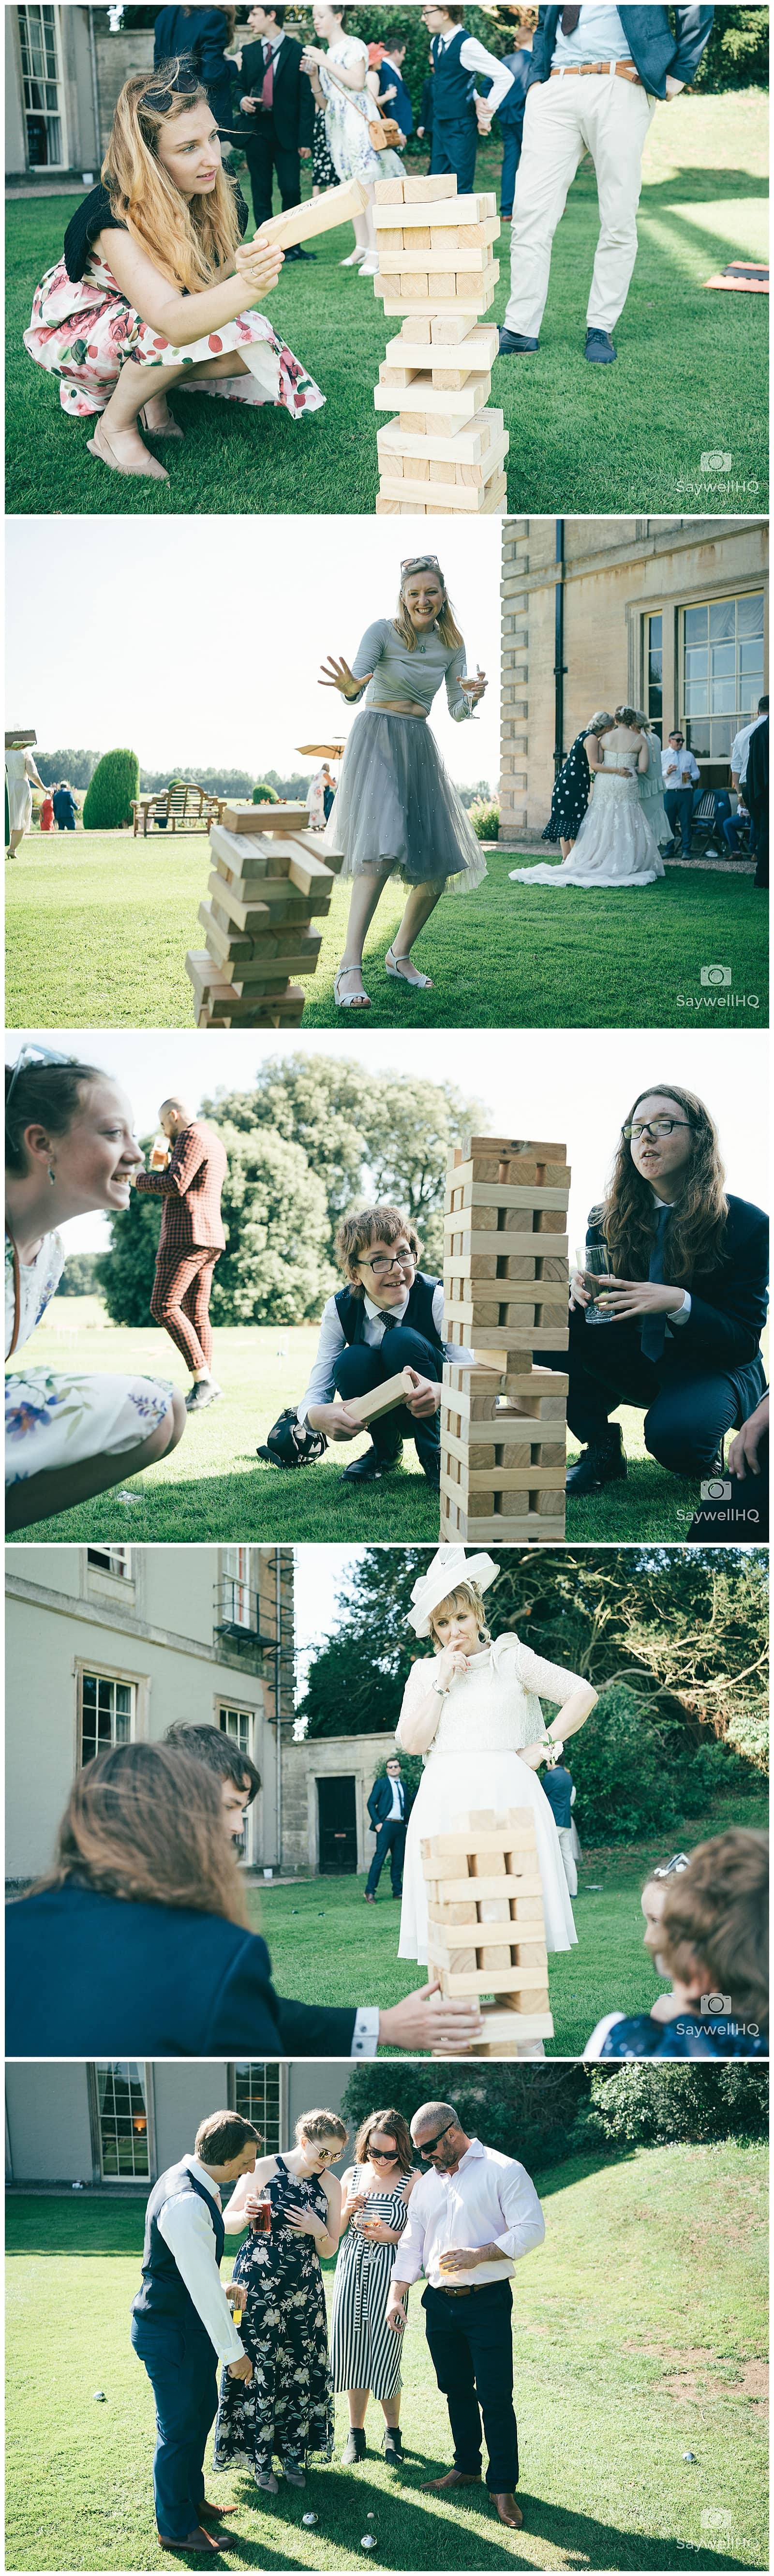 Wedding Photography at Prestwold Hall – guests relax and play garden games after the wedding ceremony at Prestwold Hall